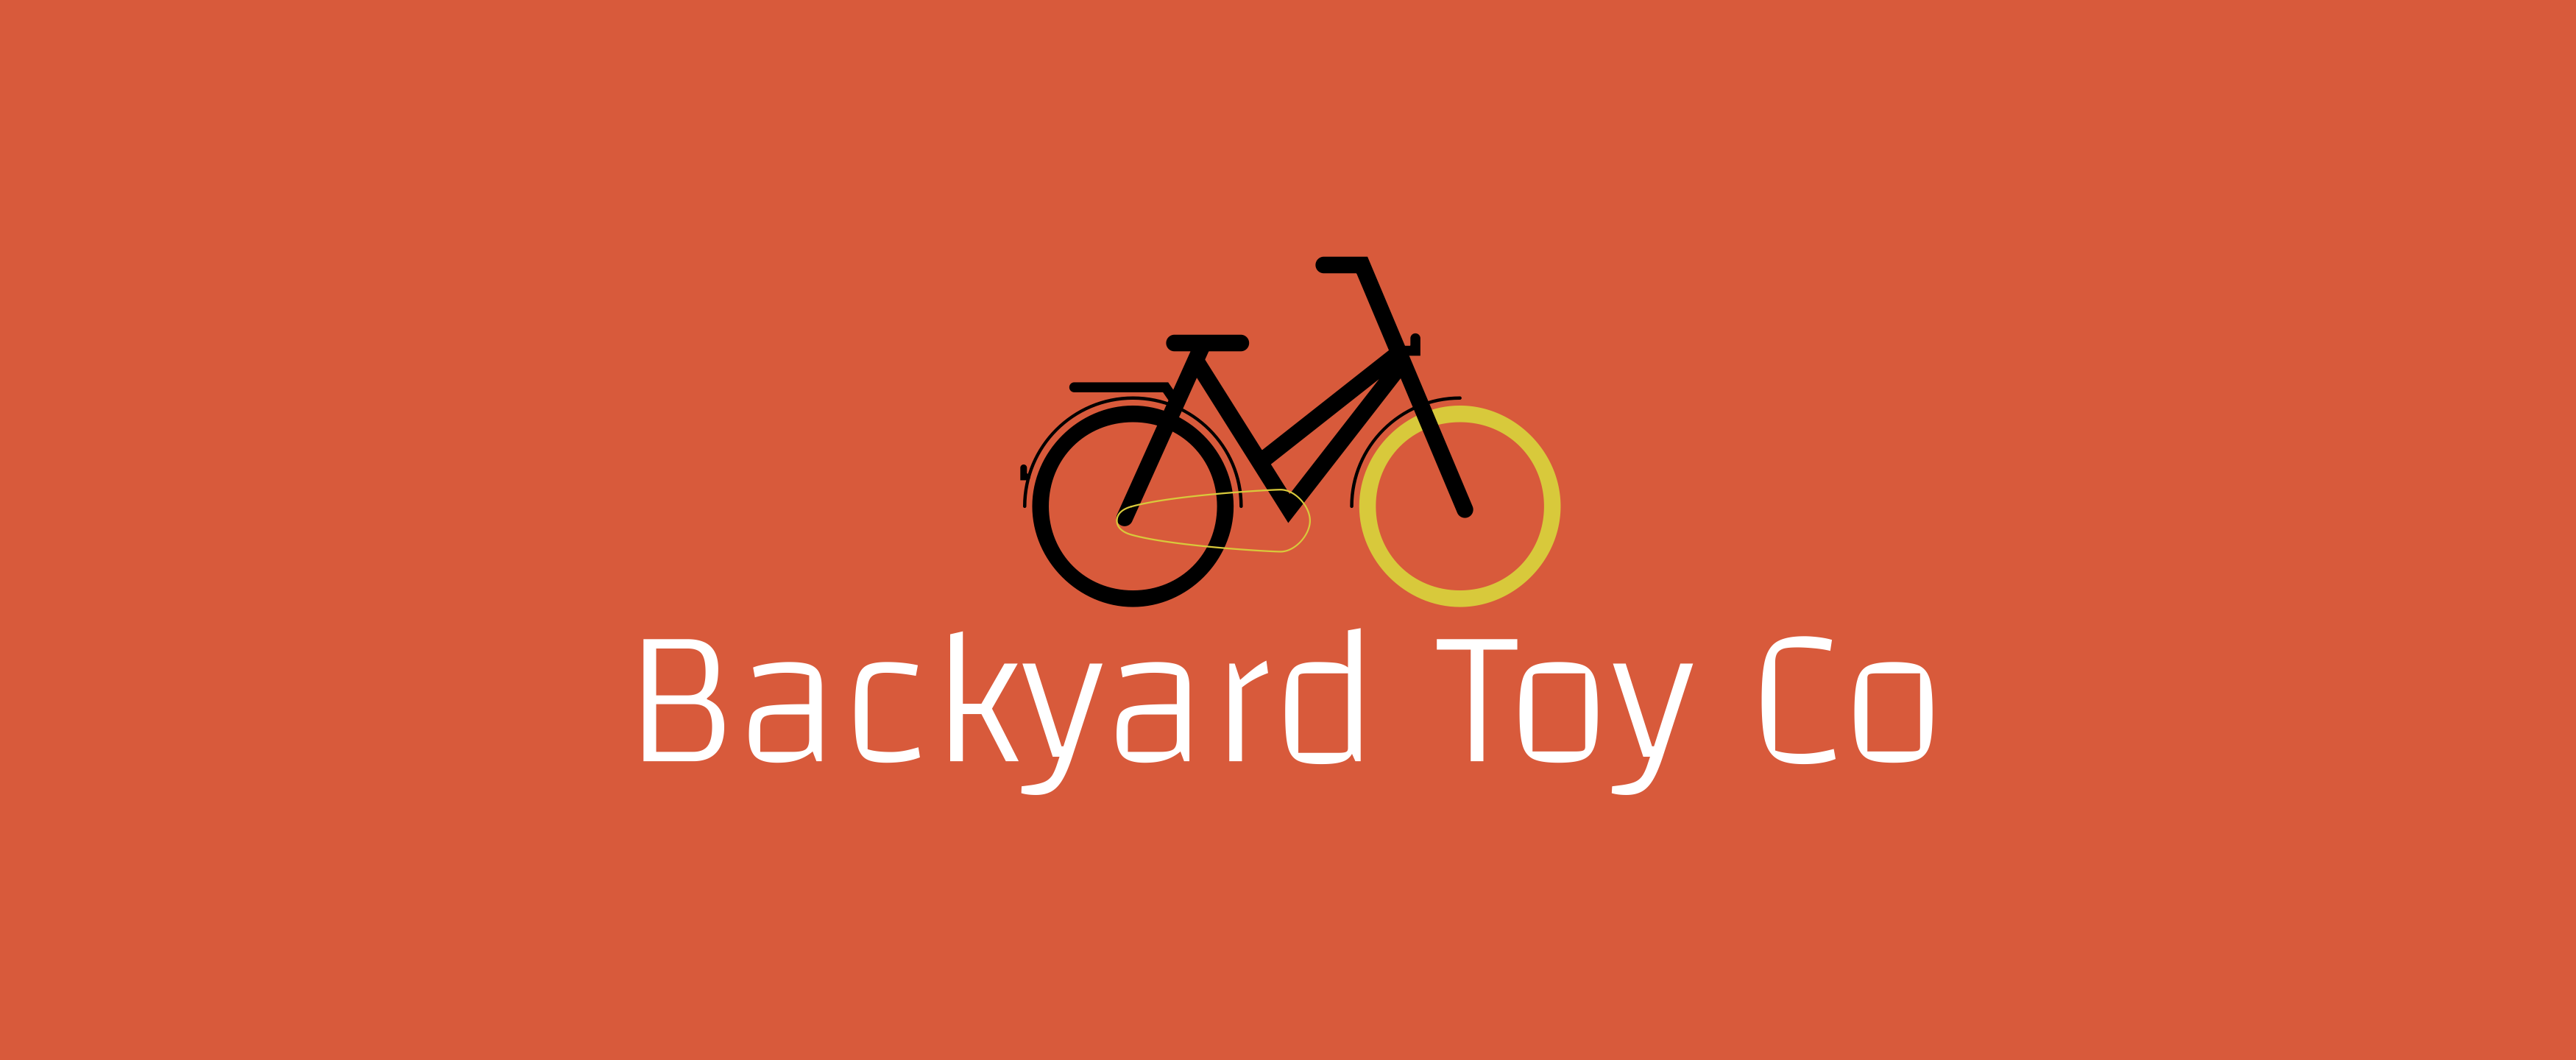 Backyard Toy Co